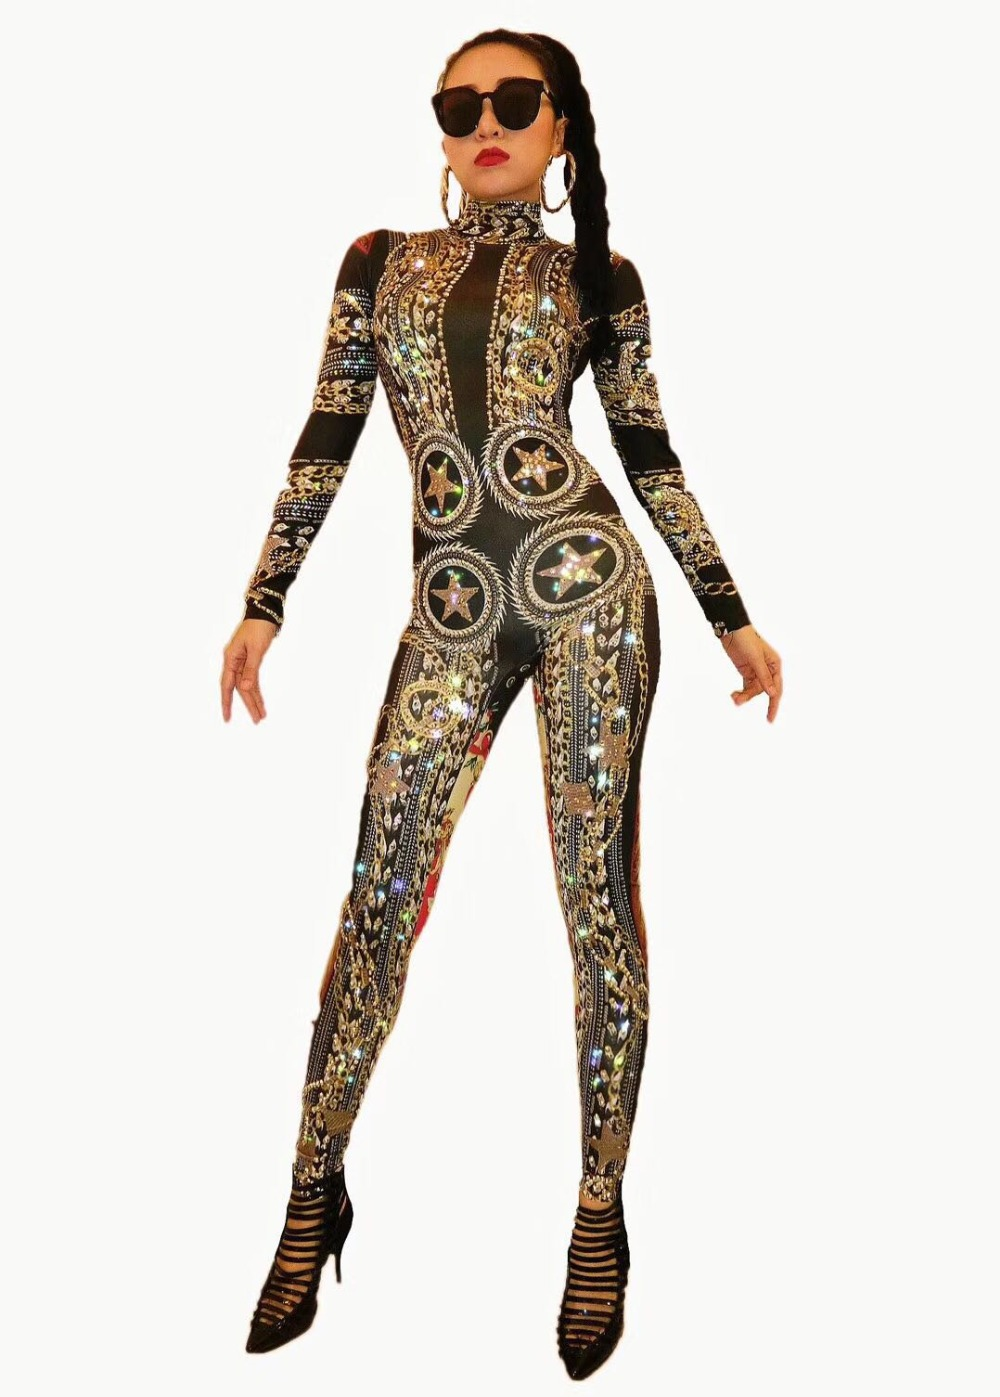 Gold Spandex Printed Stretch Rhinestones Jumpsuit Women s Sexy Bodysuit Costume Stage Outfit Singer Dancer Performance